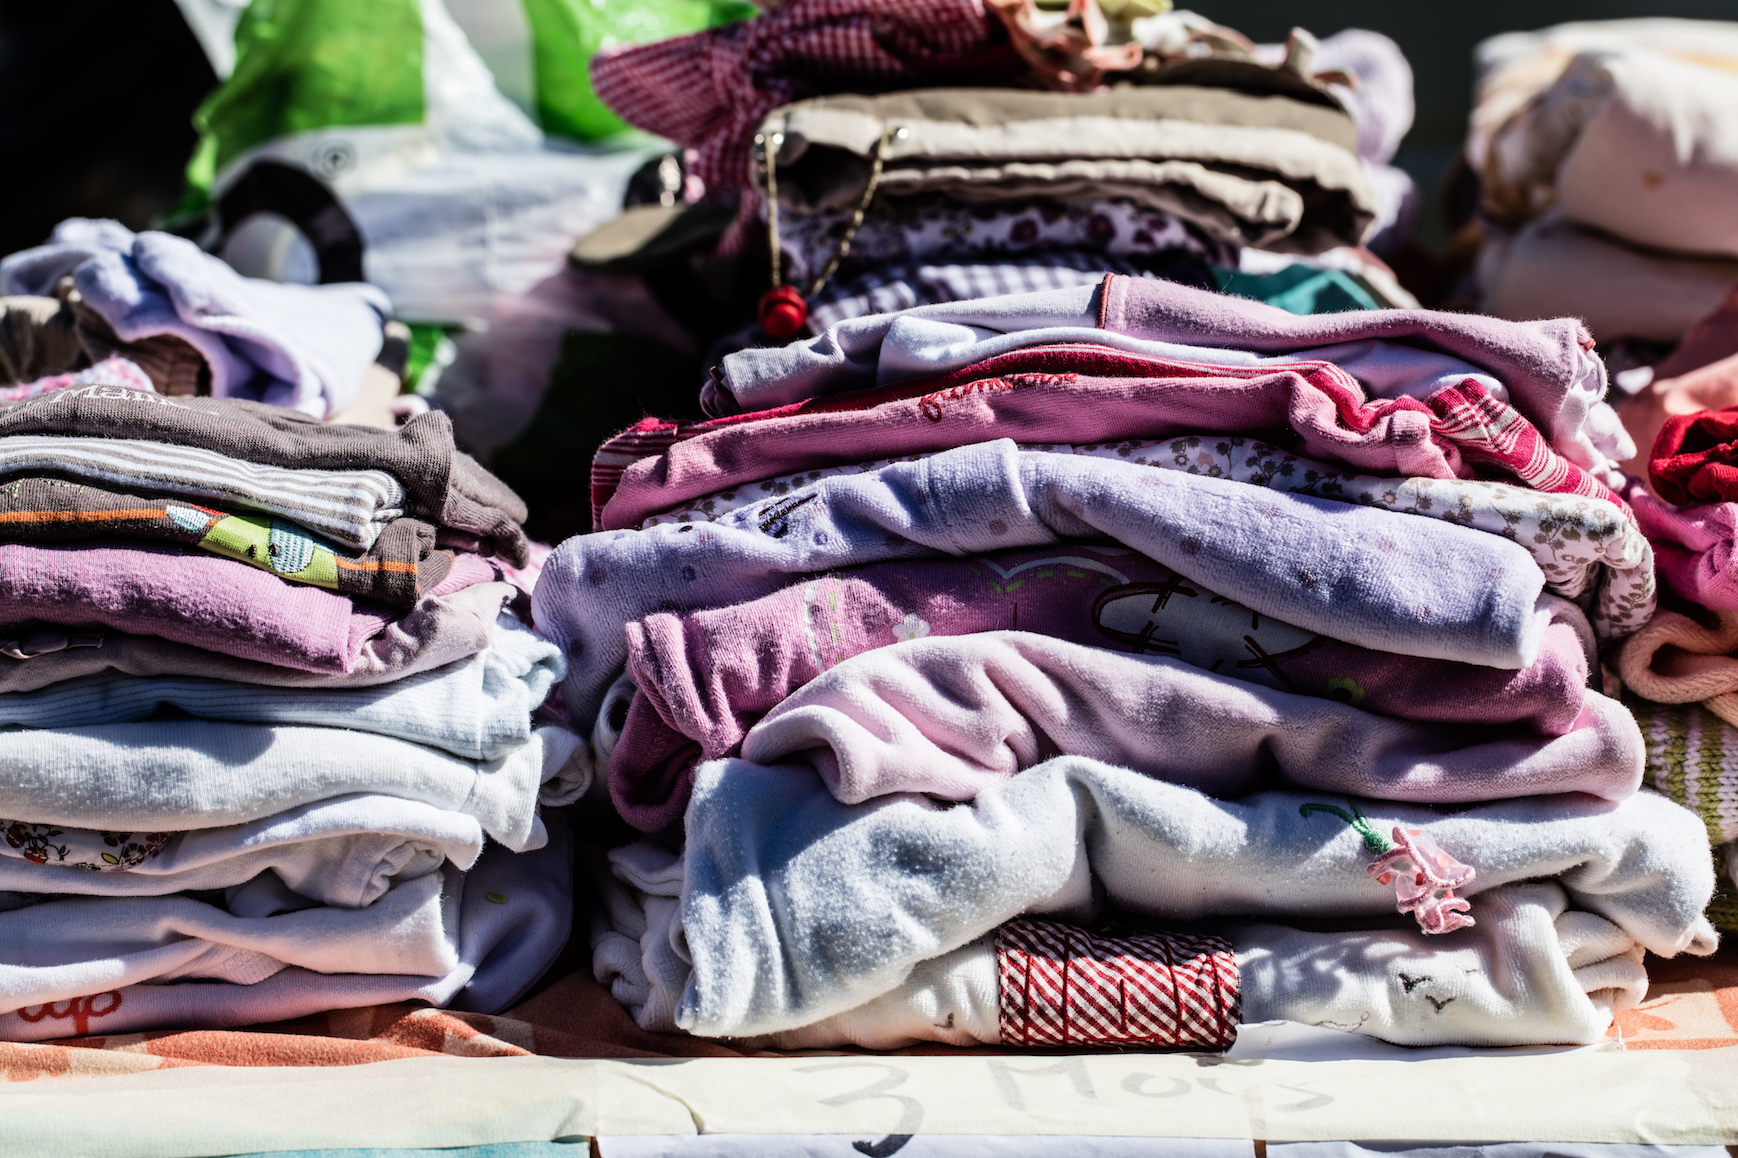 Pollution caused by the clothing we throw away, as well as by the process of making and dyeing clothes, contributes heavily to the release of CO2.